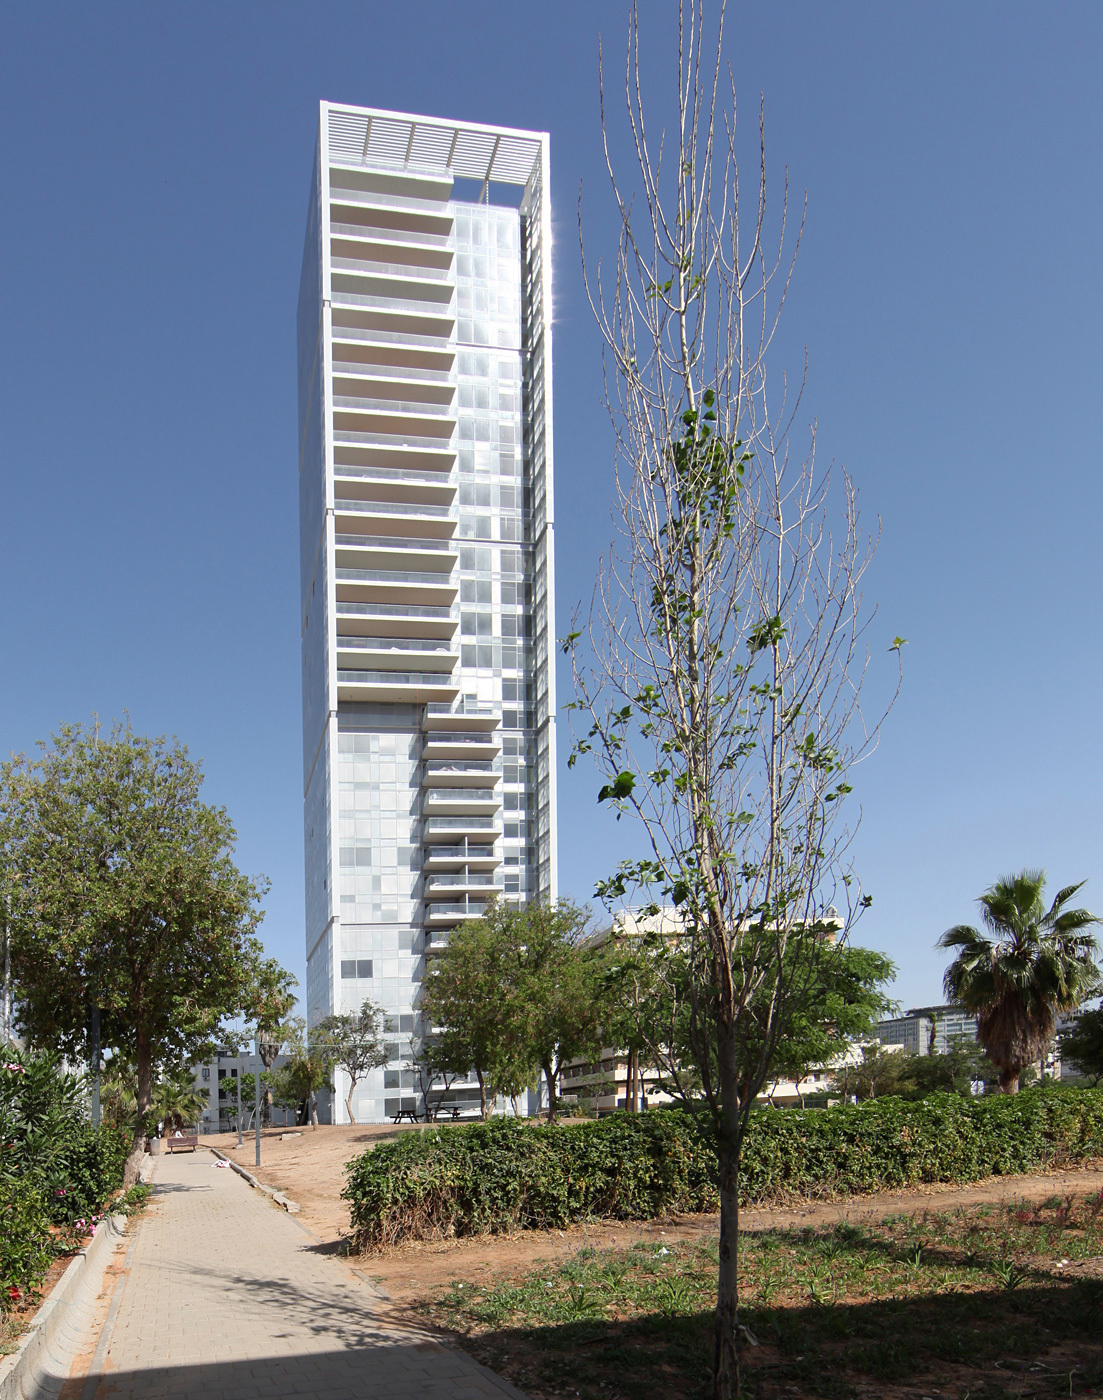 Finalist - Middle East and Africa: 6 Remez Tower, Tel Aviv, Israel by Moshe Zur Architects and Town Planners © Moshe Zur Architects